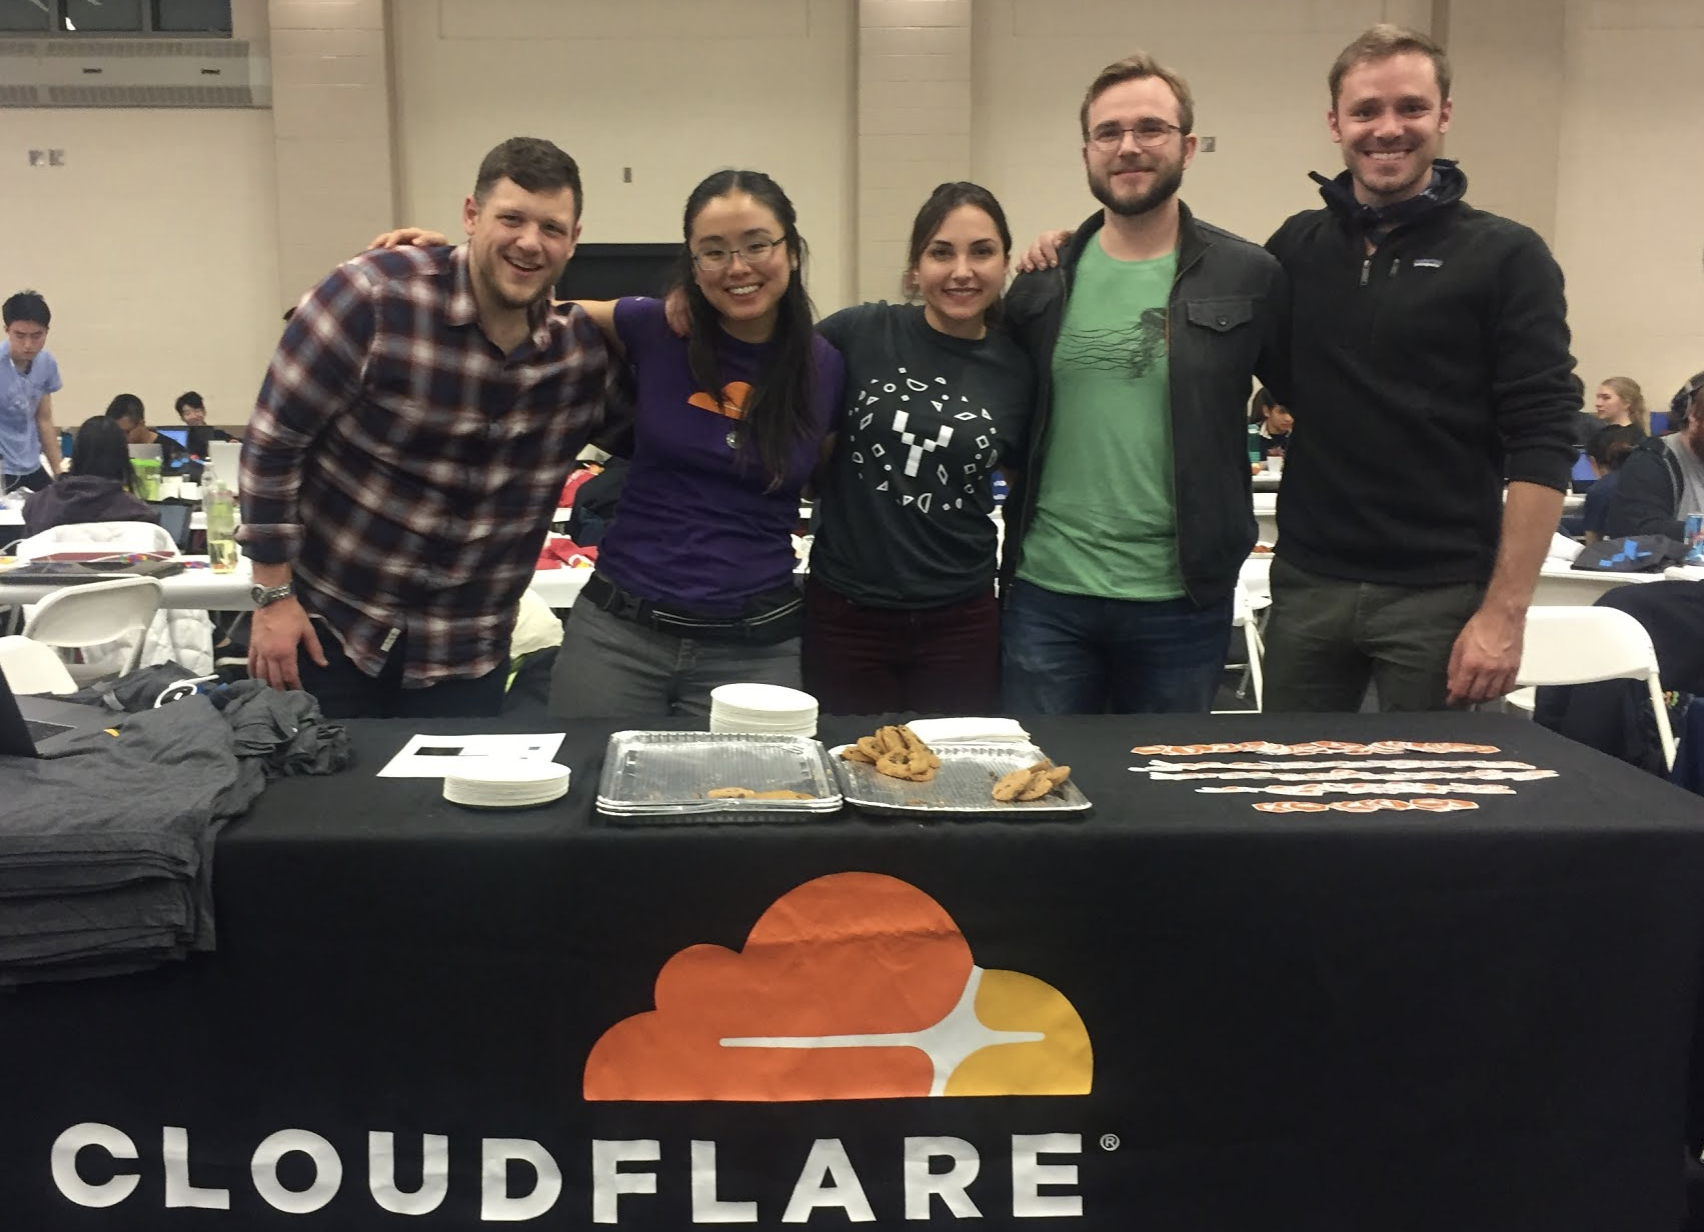 Cloudflare Mentor Team